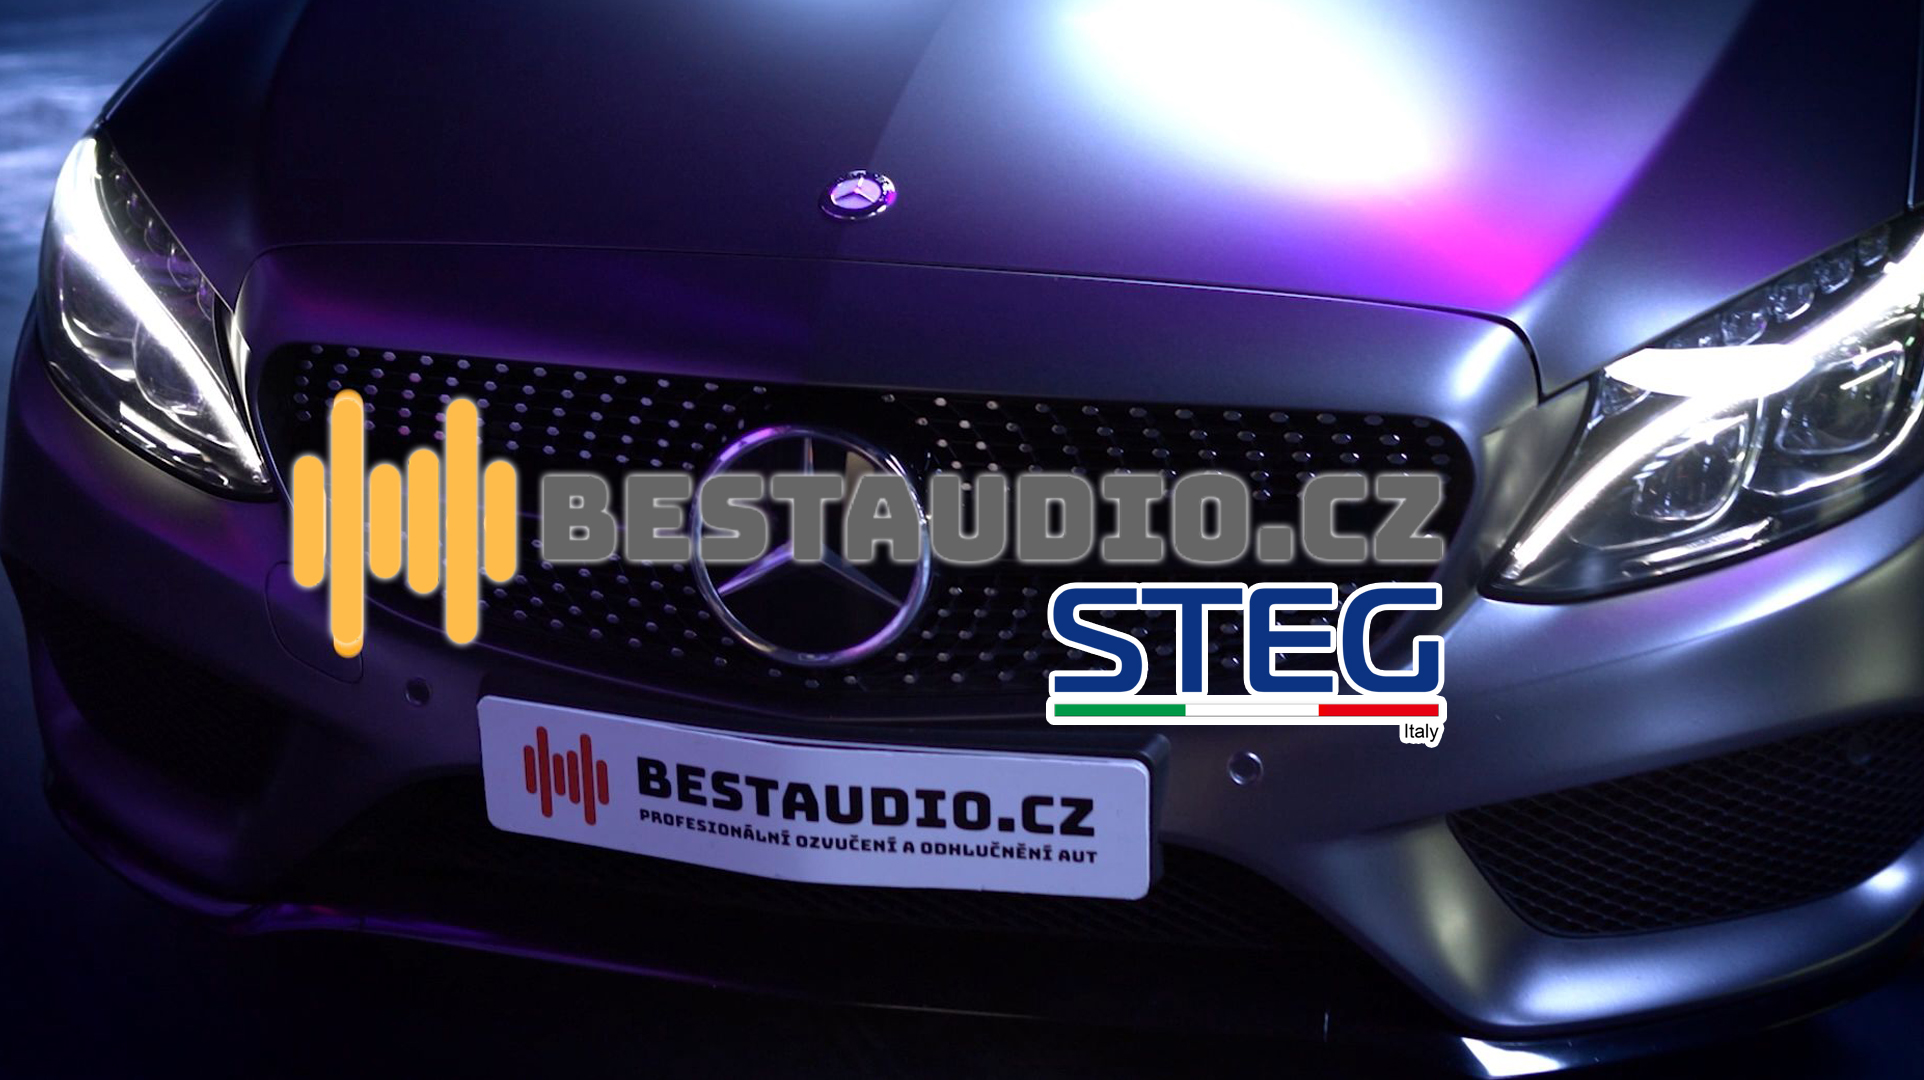 Video Mercedes - STeg